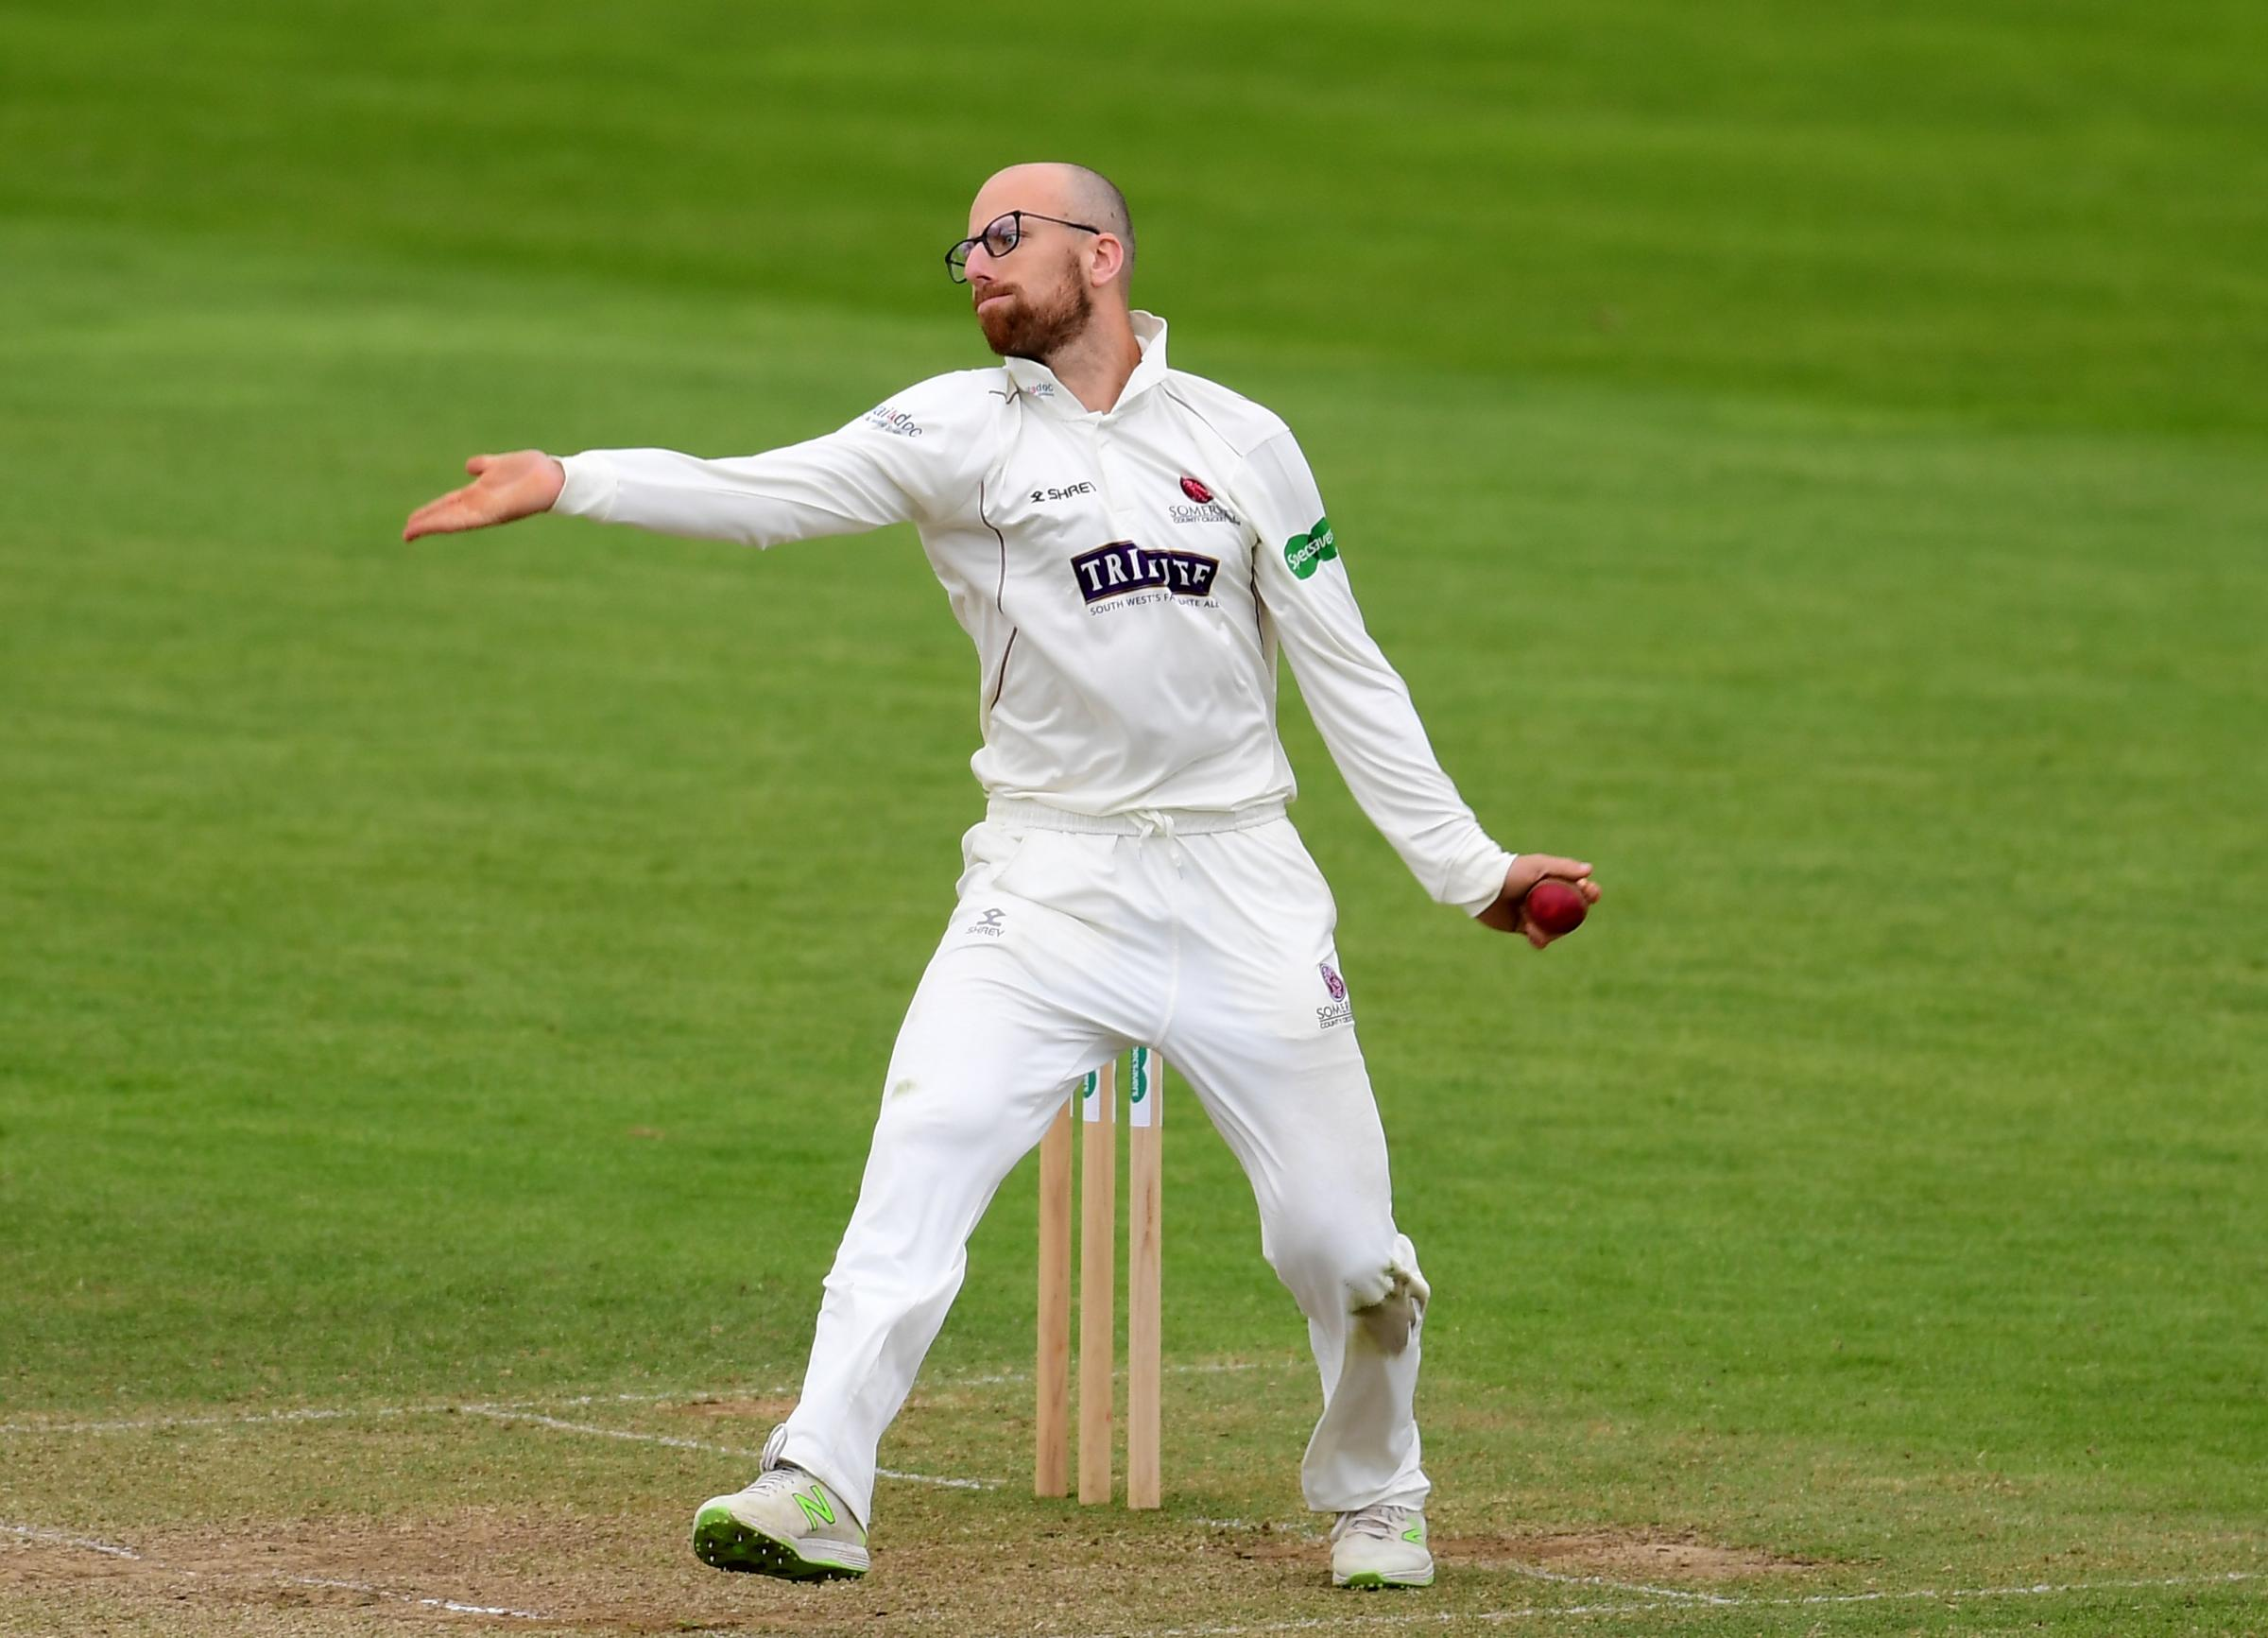 Jack Leach of Somerset bowls.